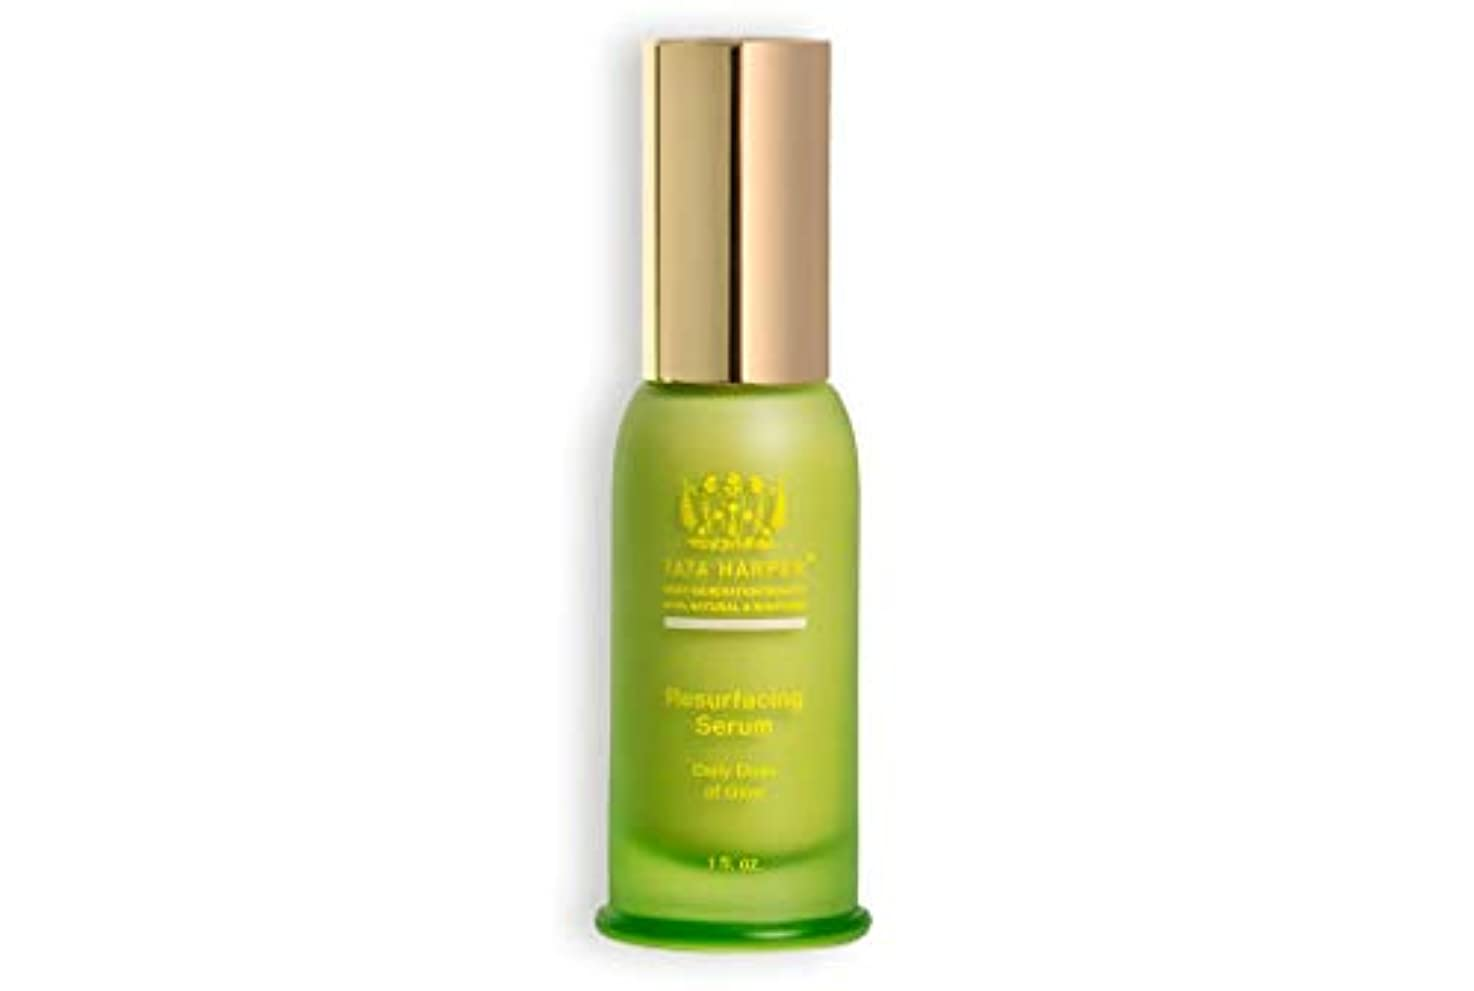 立法ボイド無秩序Tata Harper Resurfacing Serum 1oz (30ml)